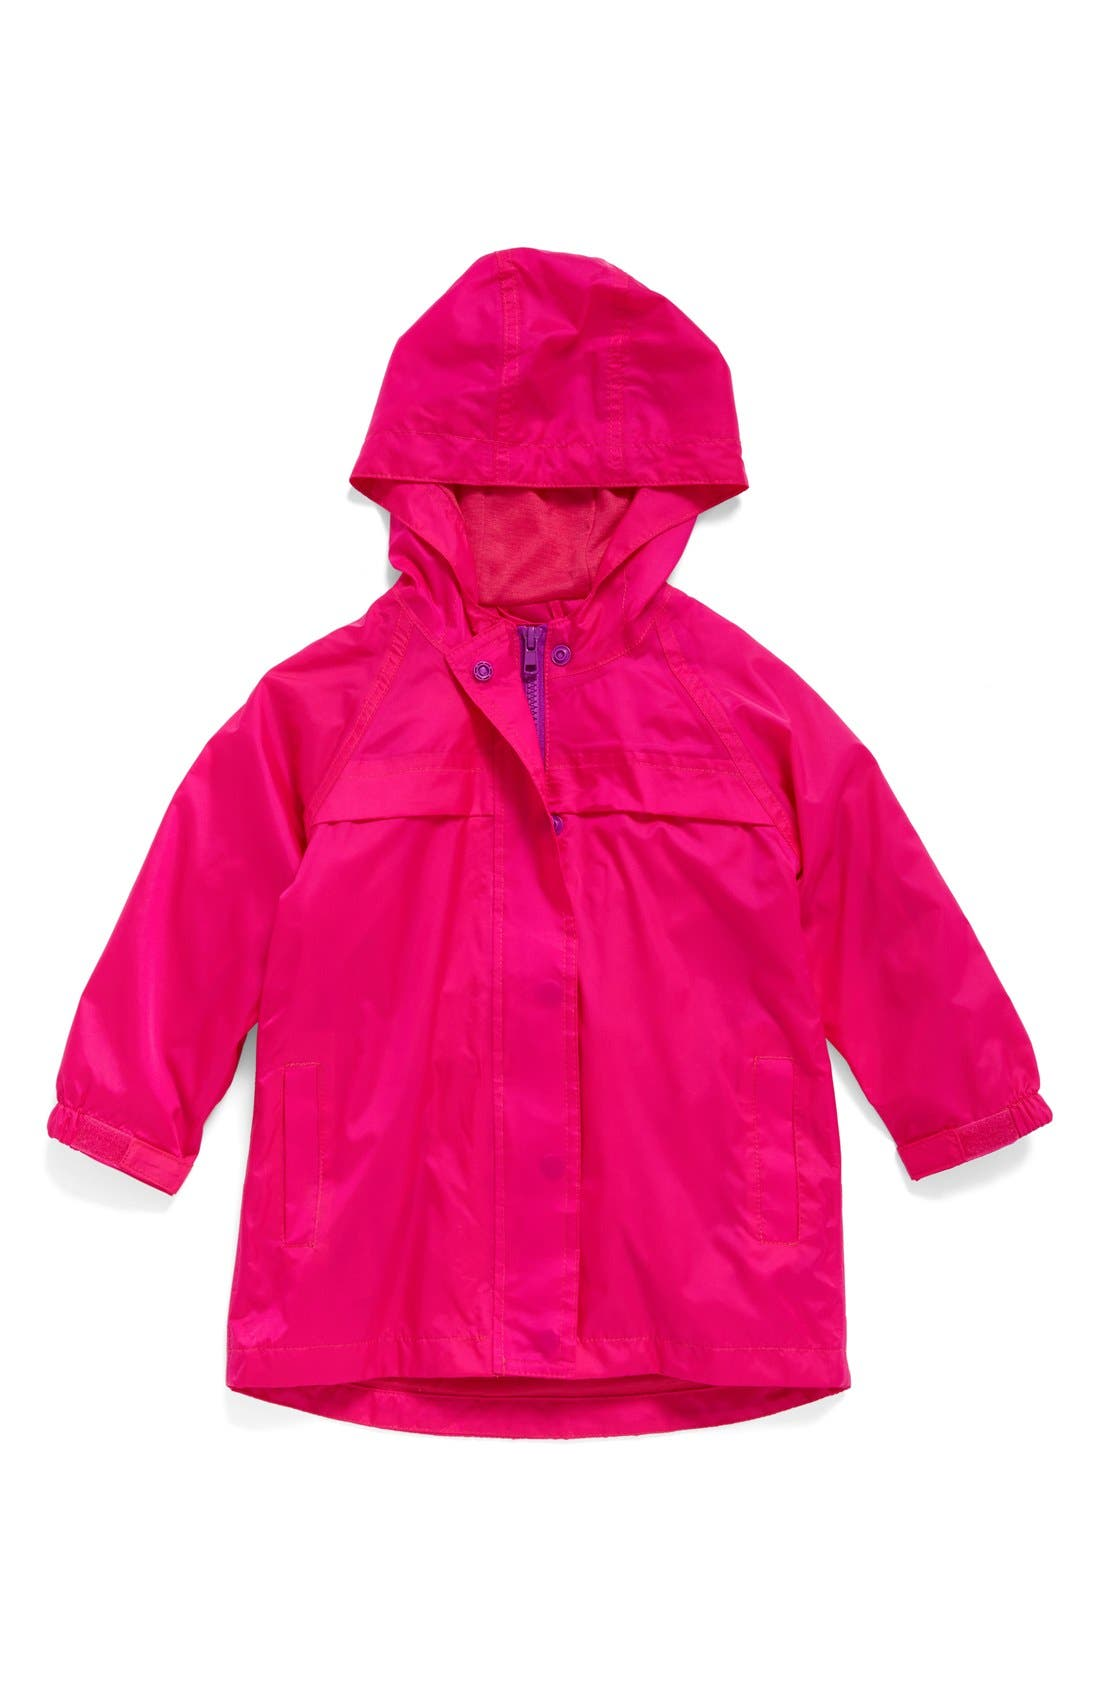 Alternate Image 1 Selected - Western Chief Hooded Raincoat (Toddler Girls & Little Girls)